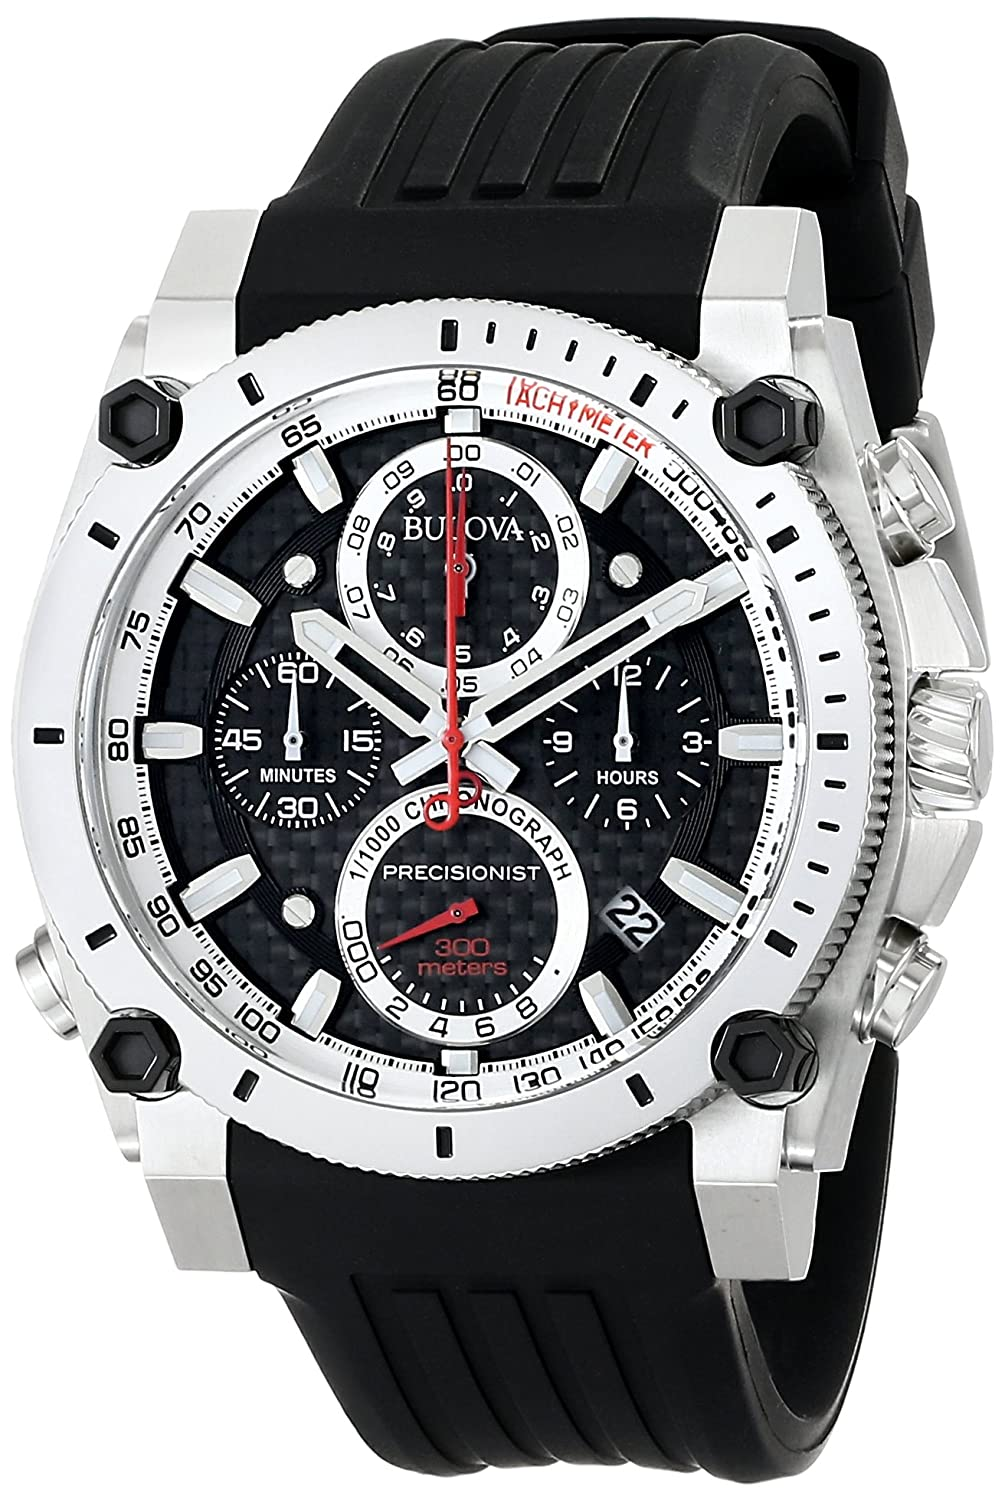 0bbc41e90 Amazon.com: Bulova Men's 98B172 Precisionist Chronograph Watch: Bulova:  Watches